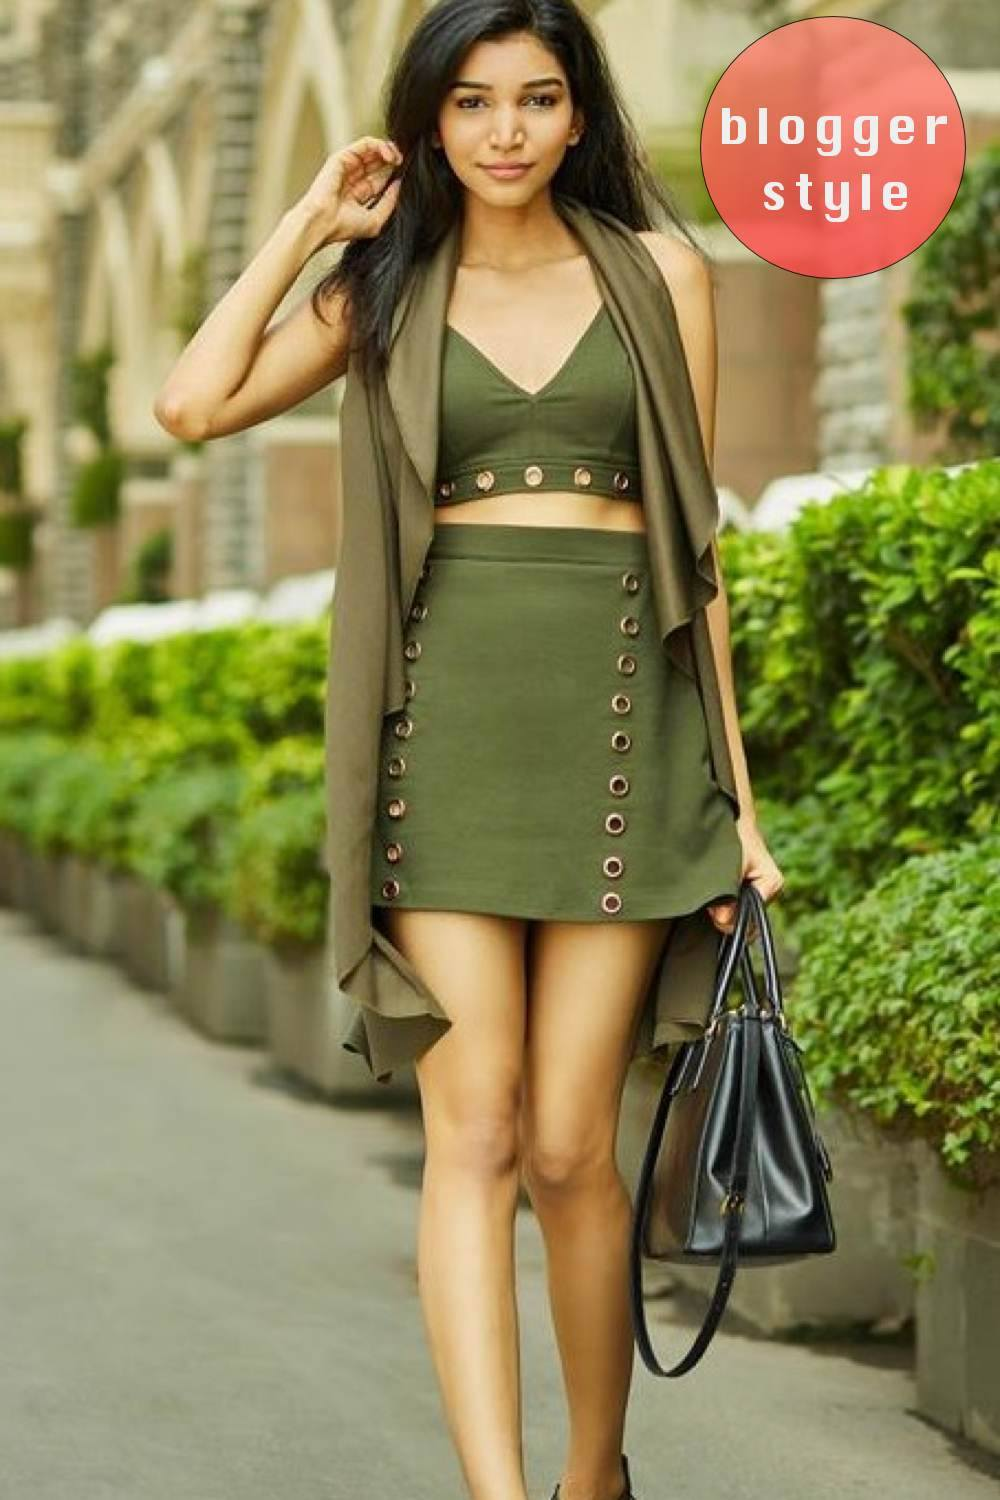 A-Line Eyelet Detail Mini Skirt in Khaki Green Blogger Front